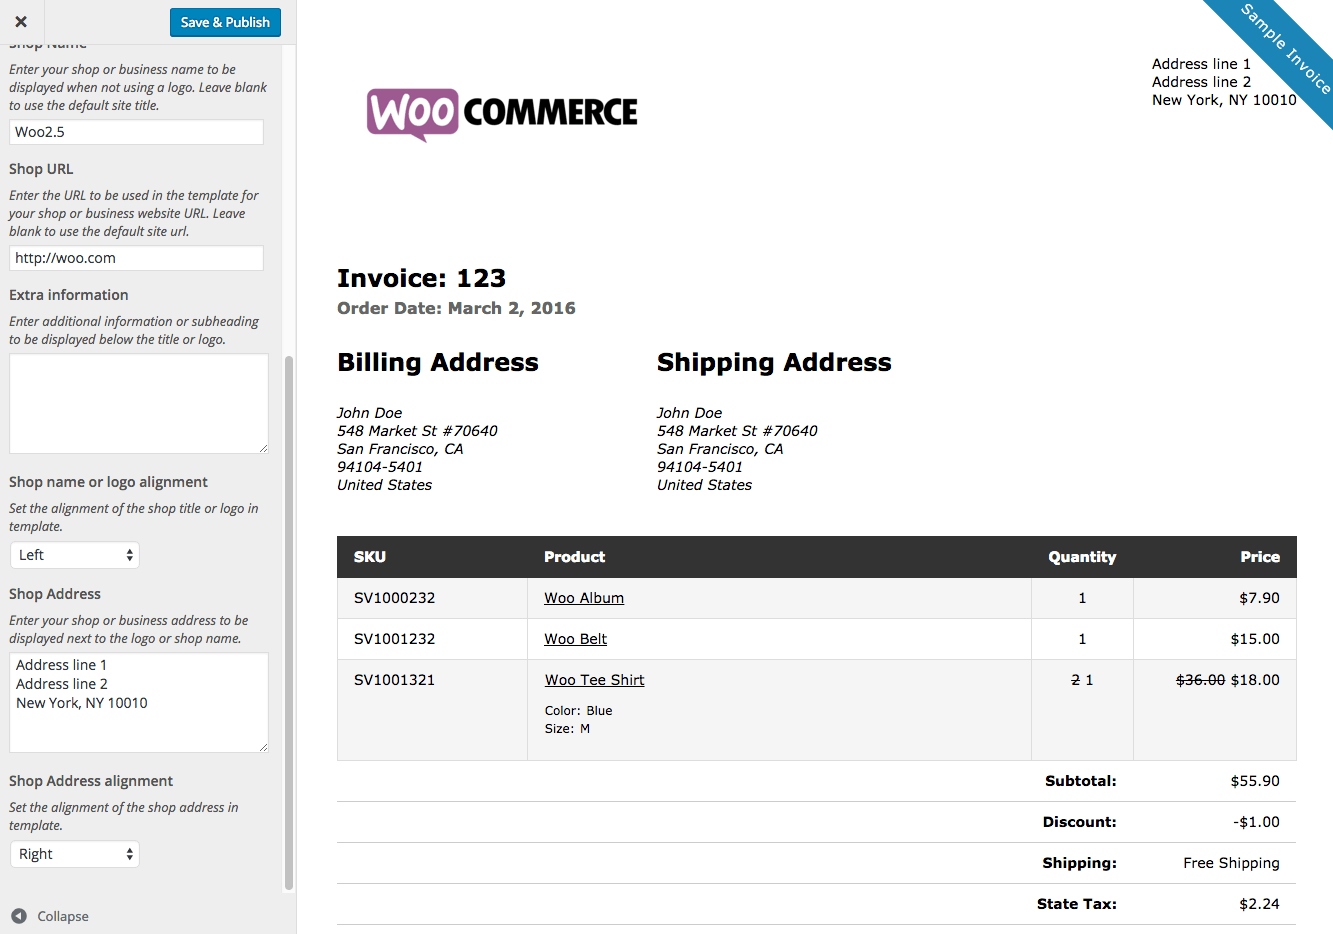 Coachoutletonlineplusus  Winning Woocommerce Print Invoices Amp Packing Lists  Woocommerce Docs With Foxy Woocommerce Print Invoices  Packing Lists Customizer With Extraordinary Create A Tax Invoice Also Invoice Prices Cars In Addition Invoicing Procedure And How To Prepare A Invoice As Well As Ato Invoice Template Additionally Saas Invoicing From Docswoocommercecom With Coachoutletonlineplusus  Foxy Woocommerce Print Invoices Amp Packing Lists  Woocommerce Docs With Extraordinary Woocommerce Print Invoices  Packing Lists Customizer And Winning Create A Tax Invoice Also Invoice Prices Cars In Addition Invoicing Procedure From Docswoocommercecom